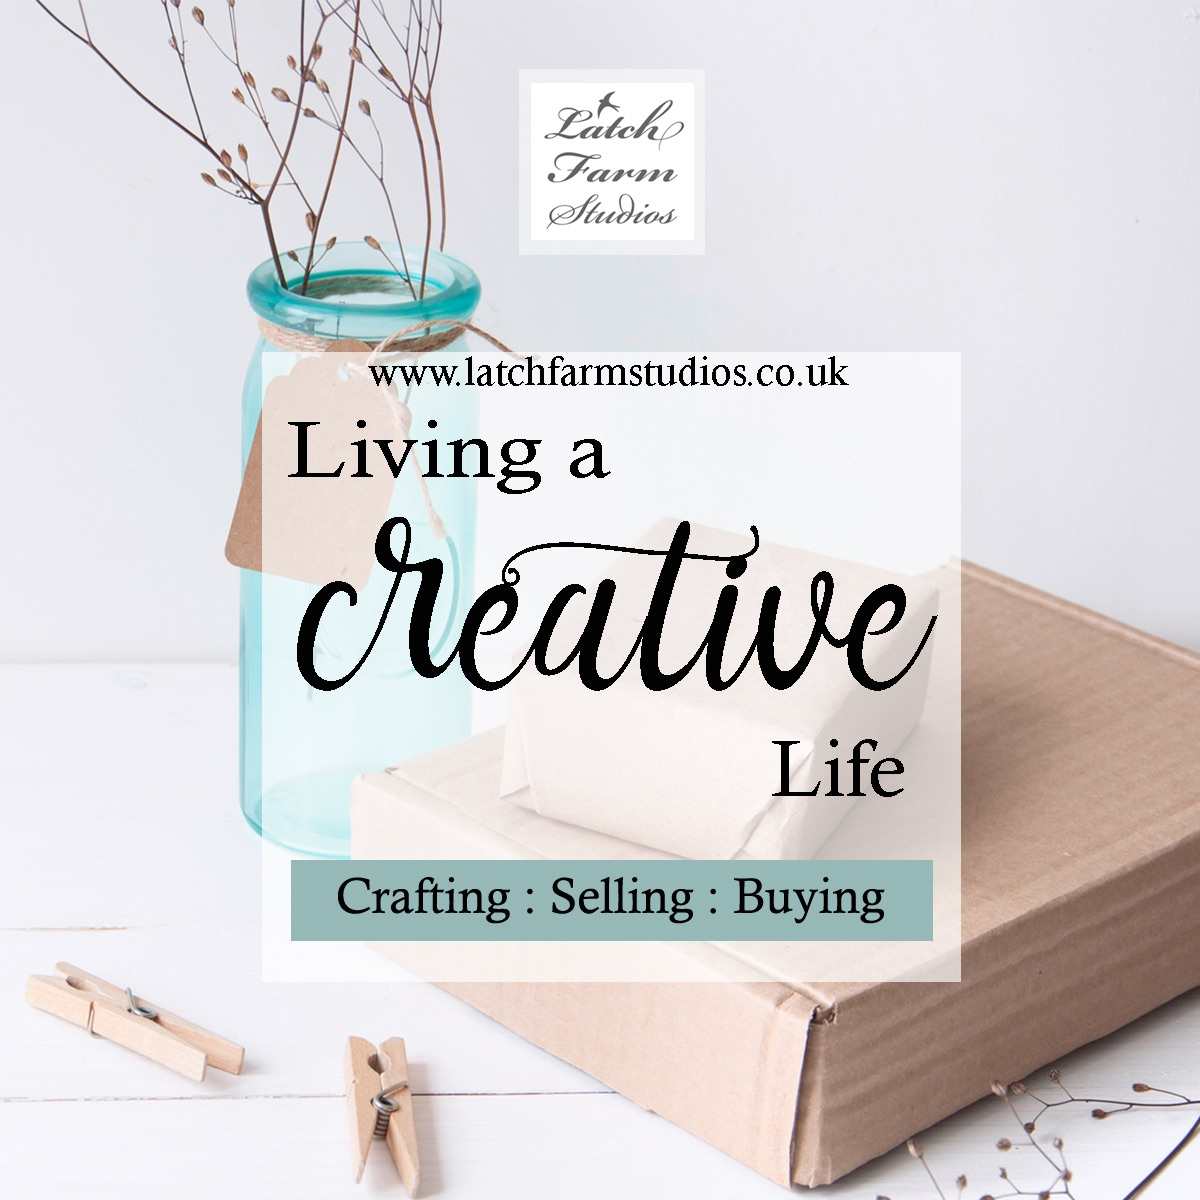 Latch Farm Studios living a creative life crafting selling buying